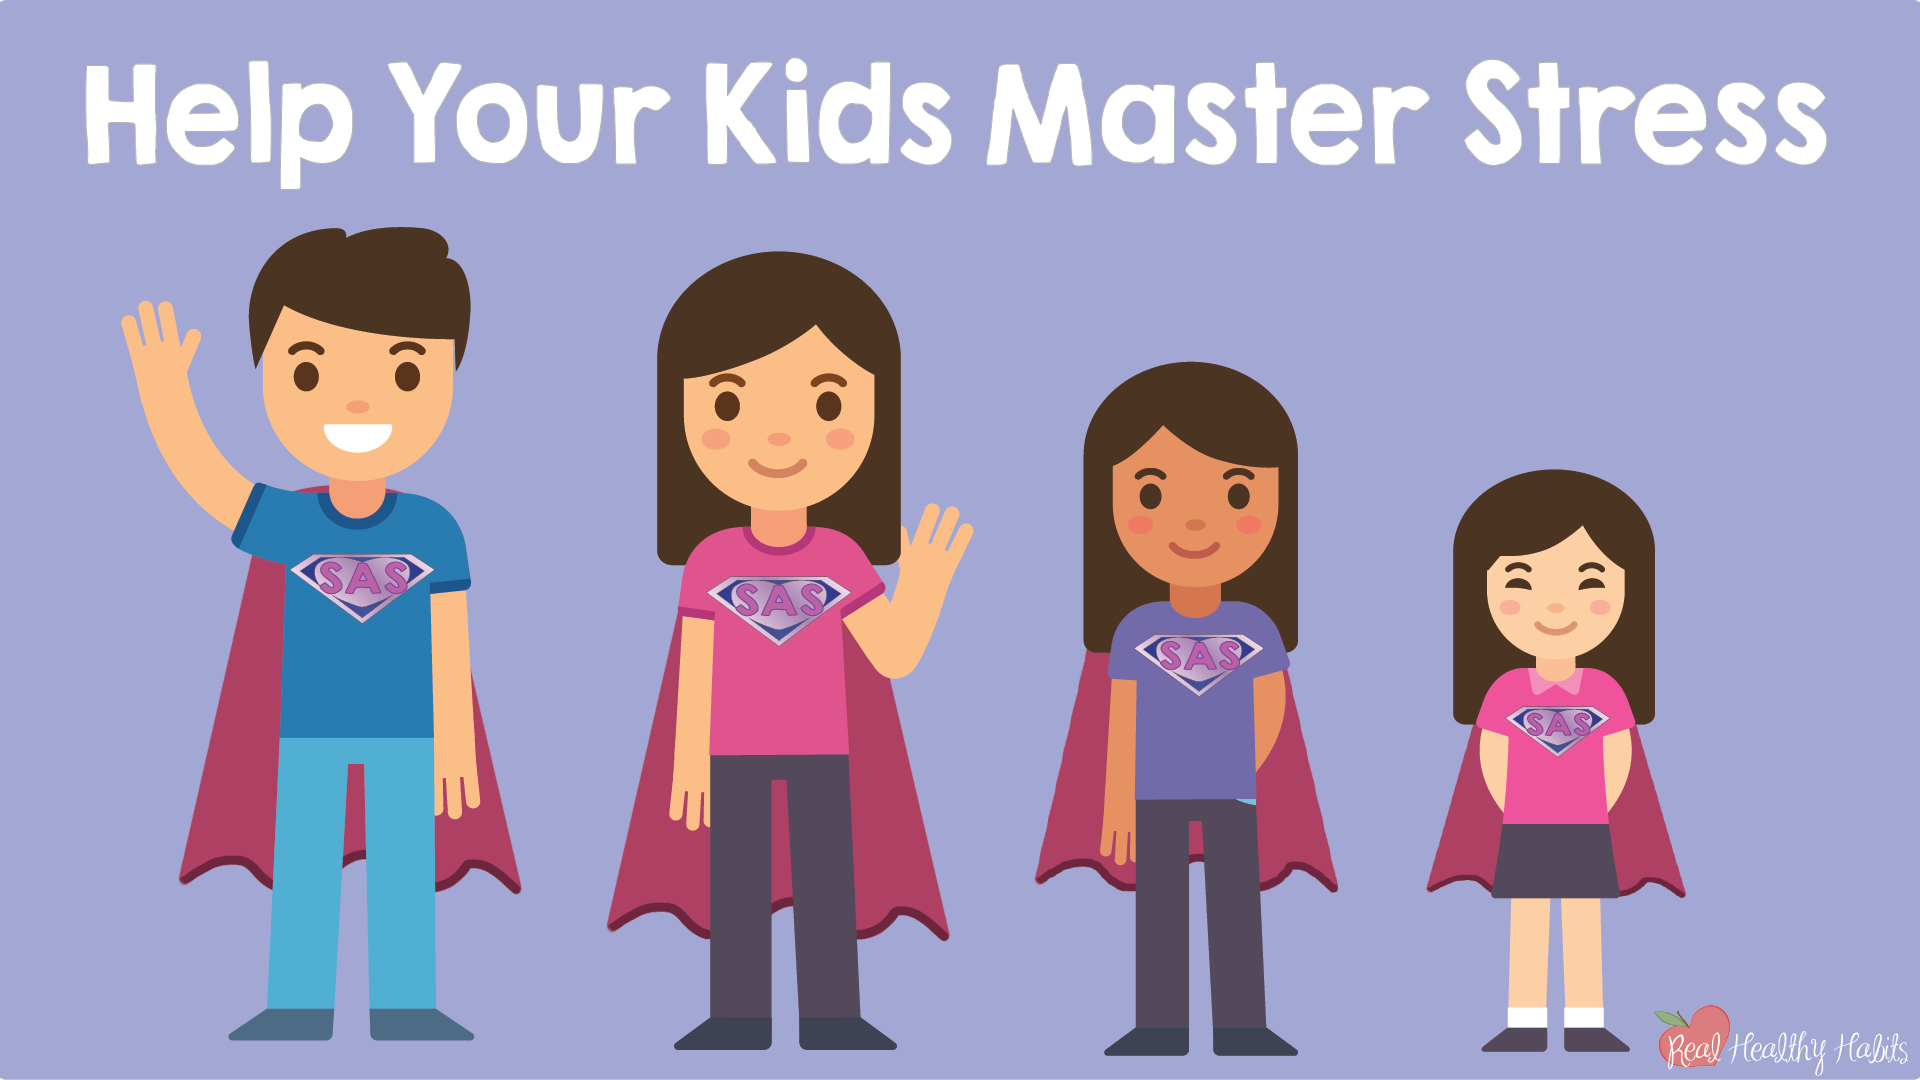 You don't have to save your kids from stress if you teach them how to QuSAP! | How to Make Stress Your Superpower: Transform Your Stress with This Easy One Minute Habit | www.realhealthyhabits.com